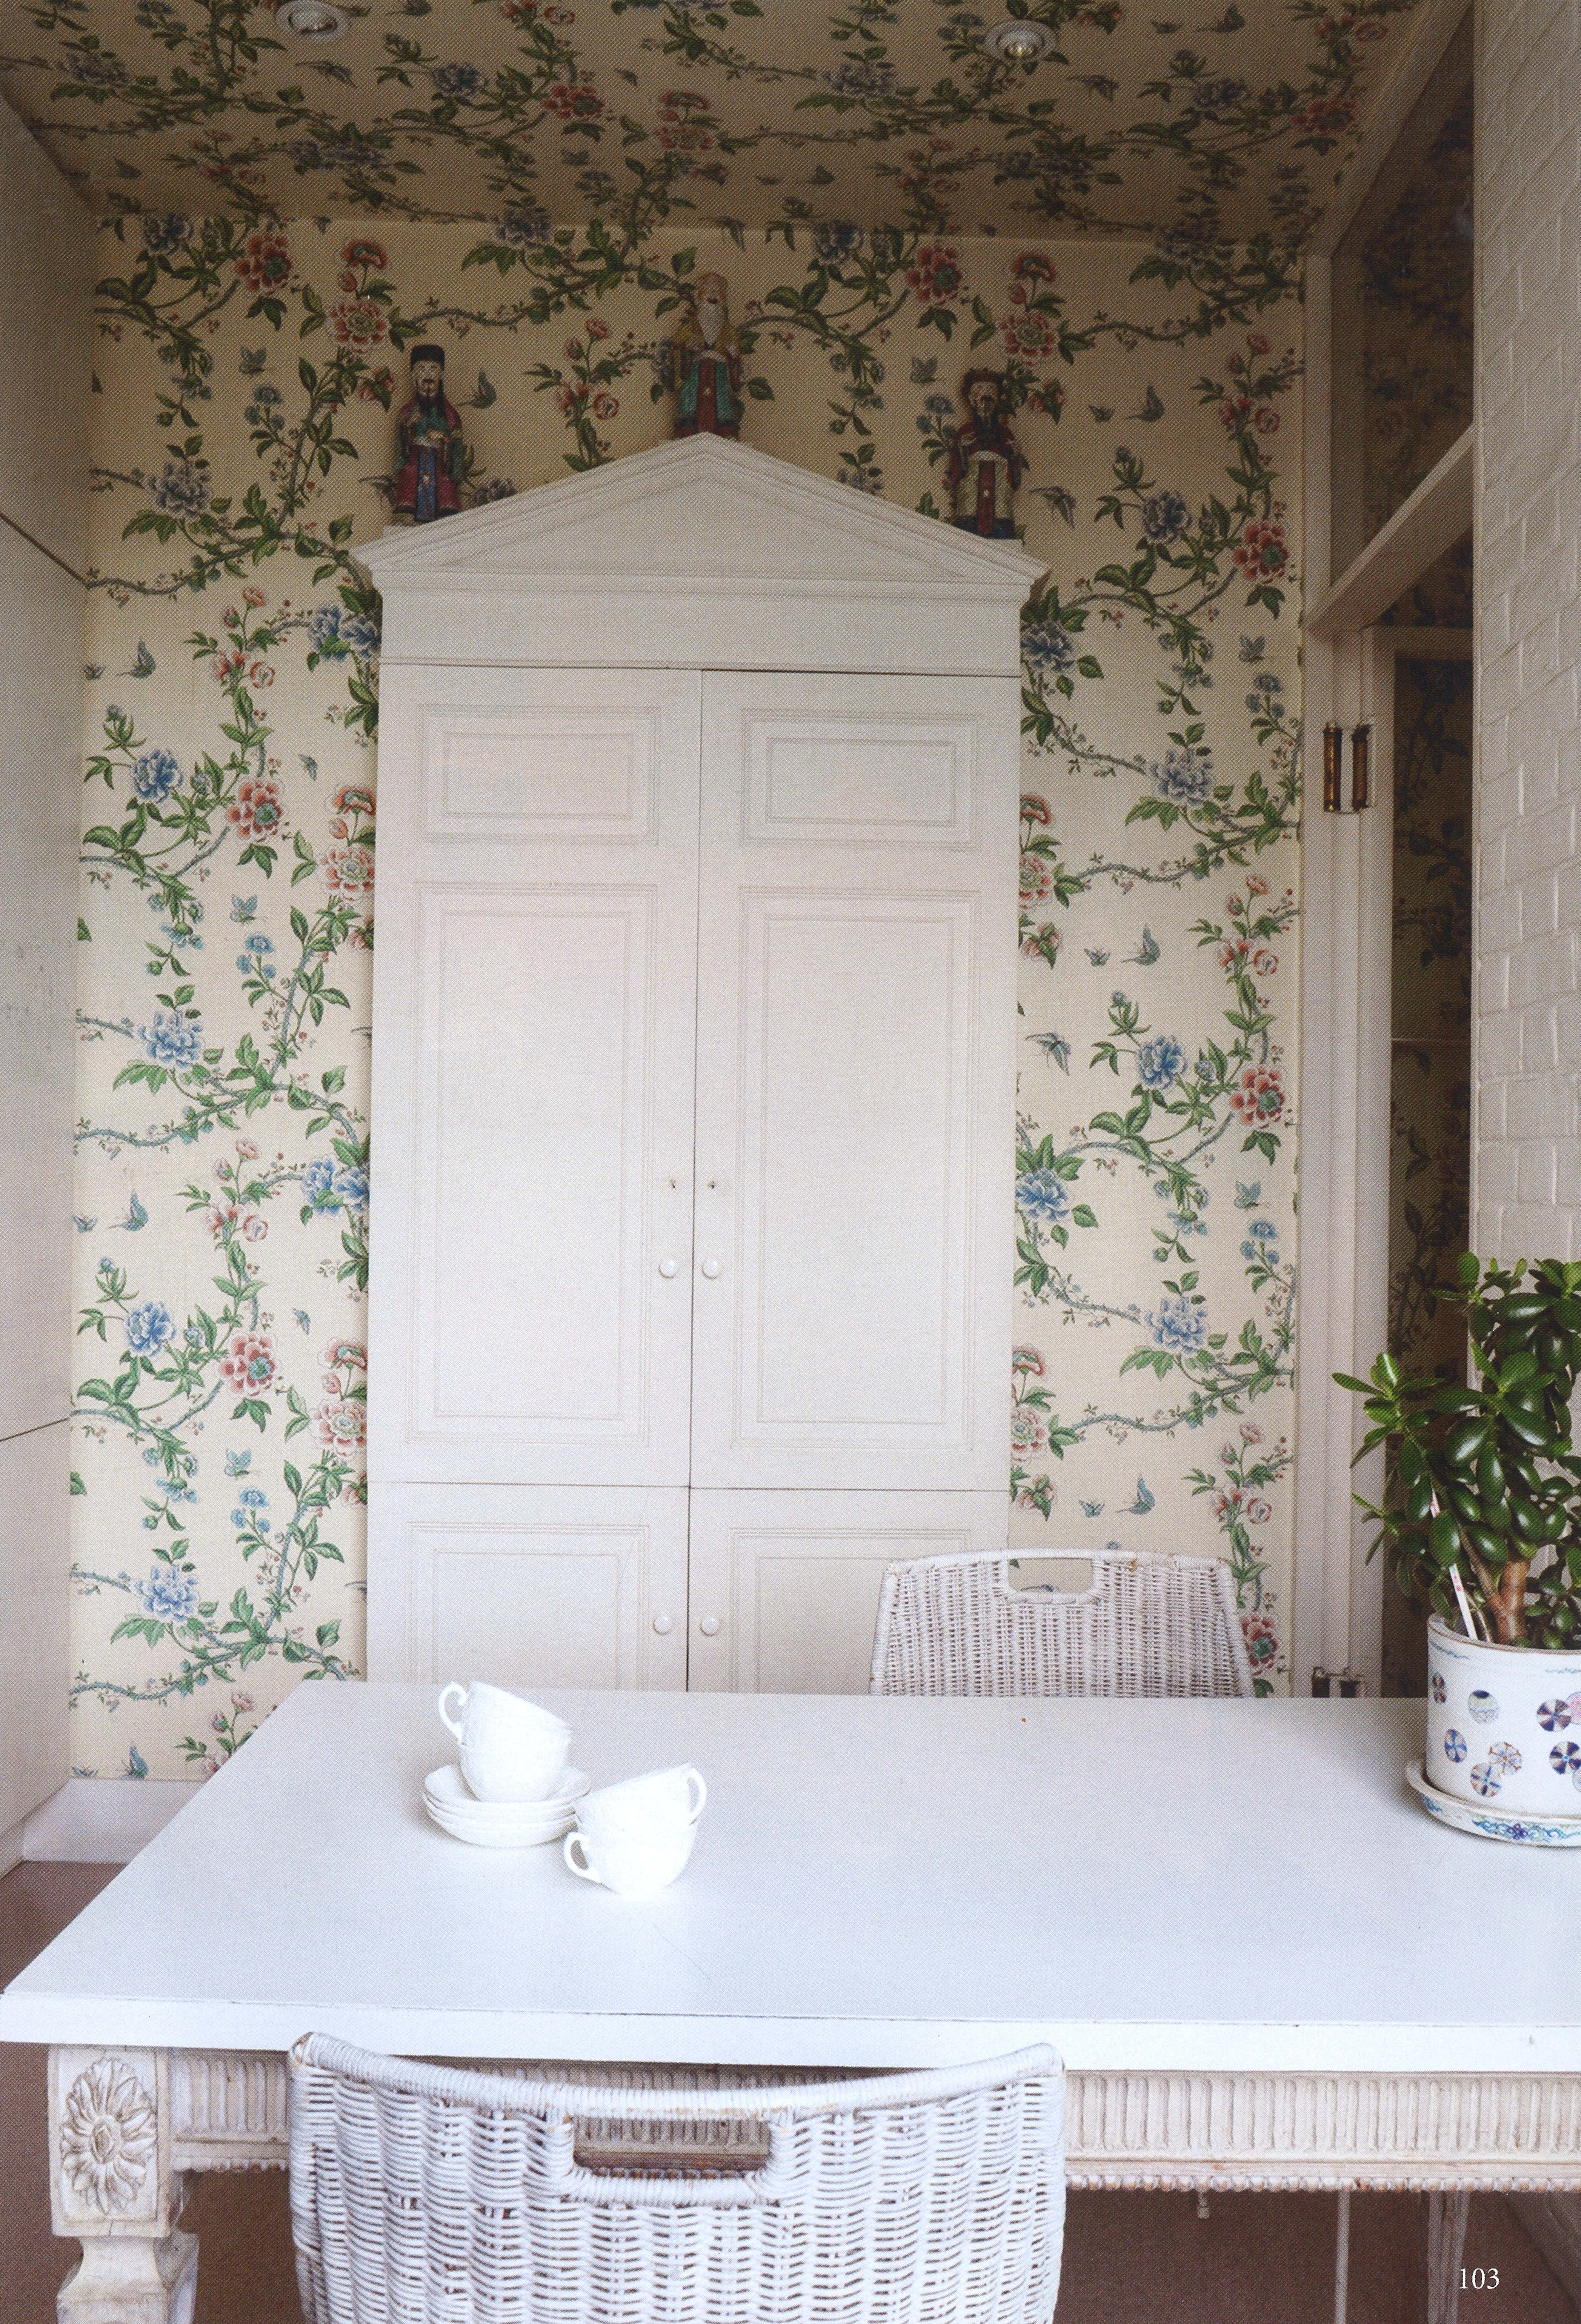 Floral chinoiserie wallpaper with cork floor and white painted floral chinoiserie wallpaper with cork floor and white painted furnitureg dailygadgetfo Images